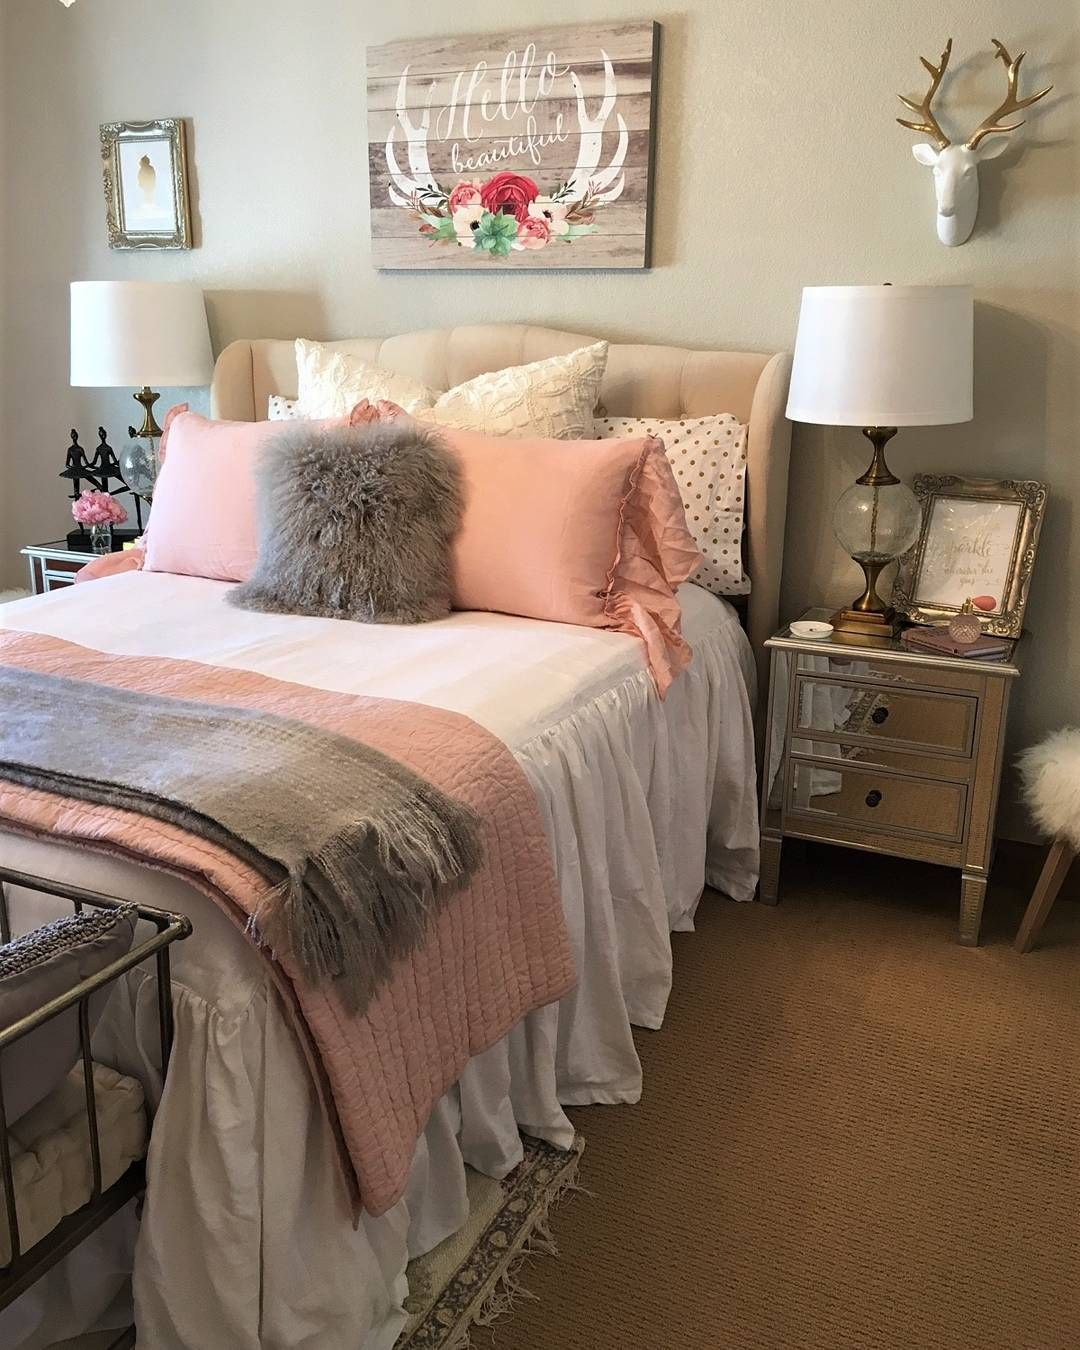 were feeling pretty in pink with this stunning bedroom design